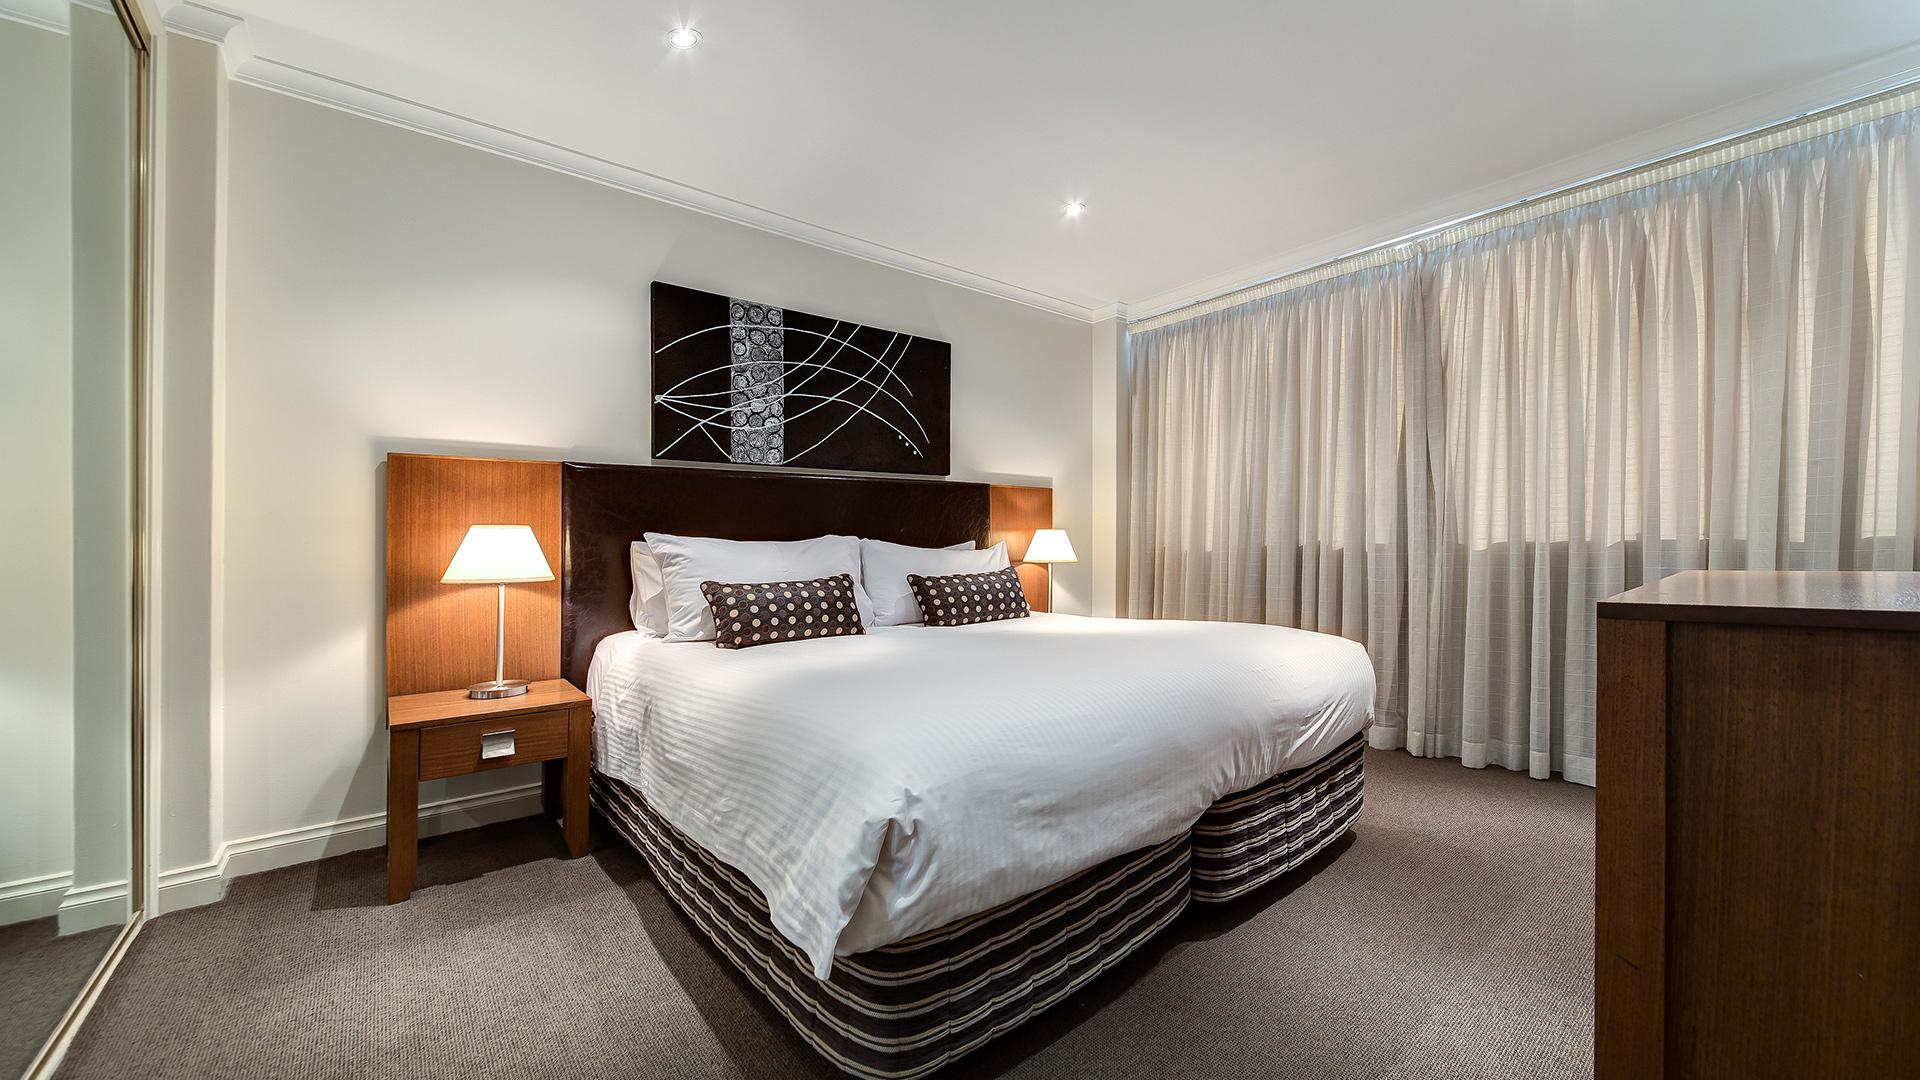 Deluxe One-Bedroom Apartment image 1 at The York By Swiss-Belhotel by Council of the City of Sydney, New South Wales, Australia